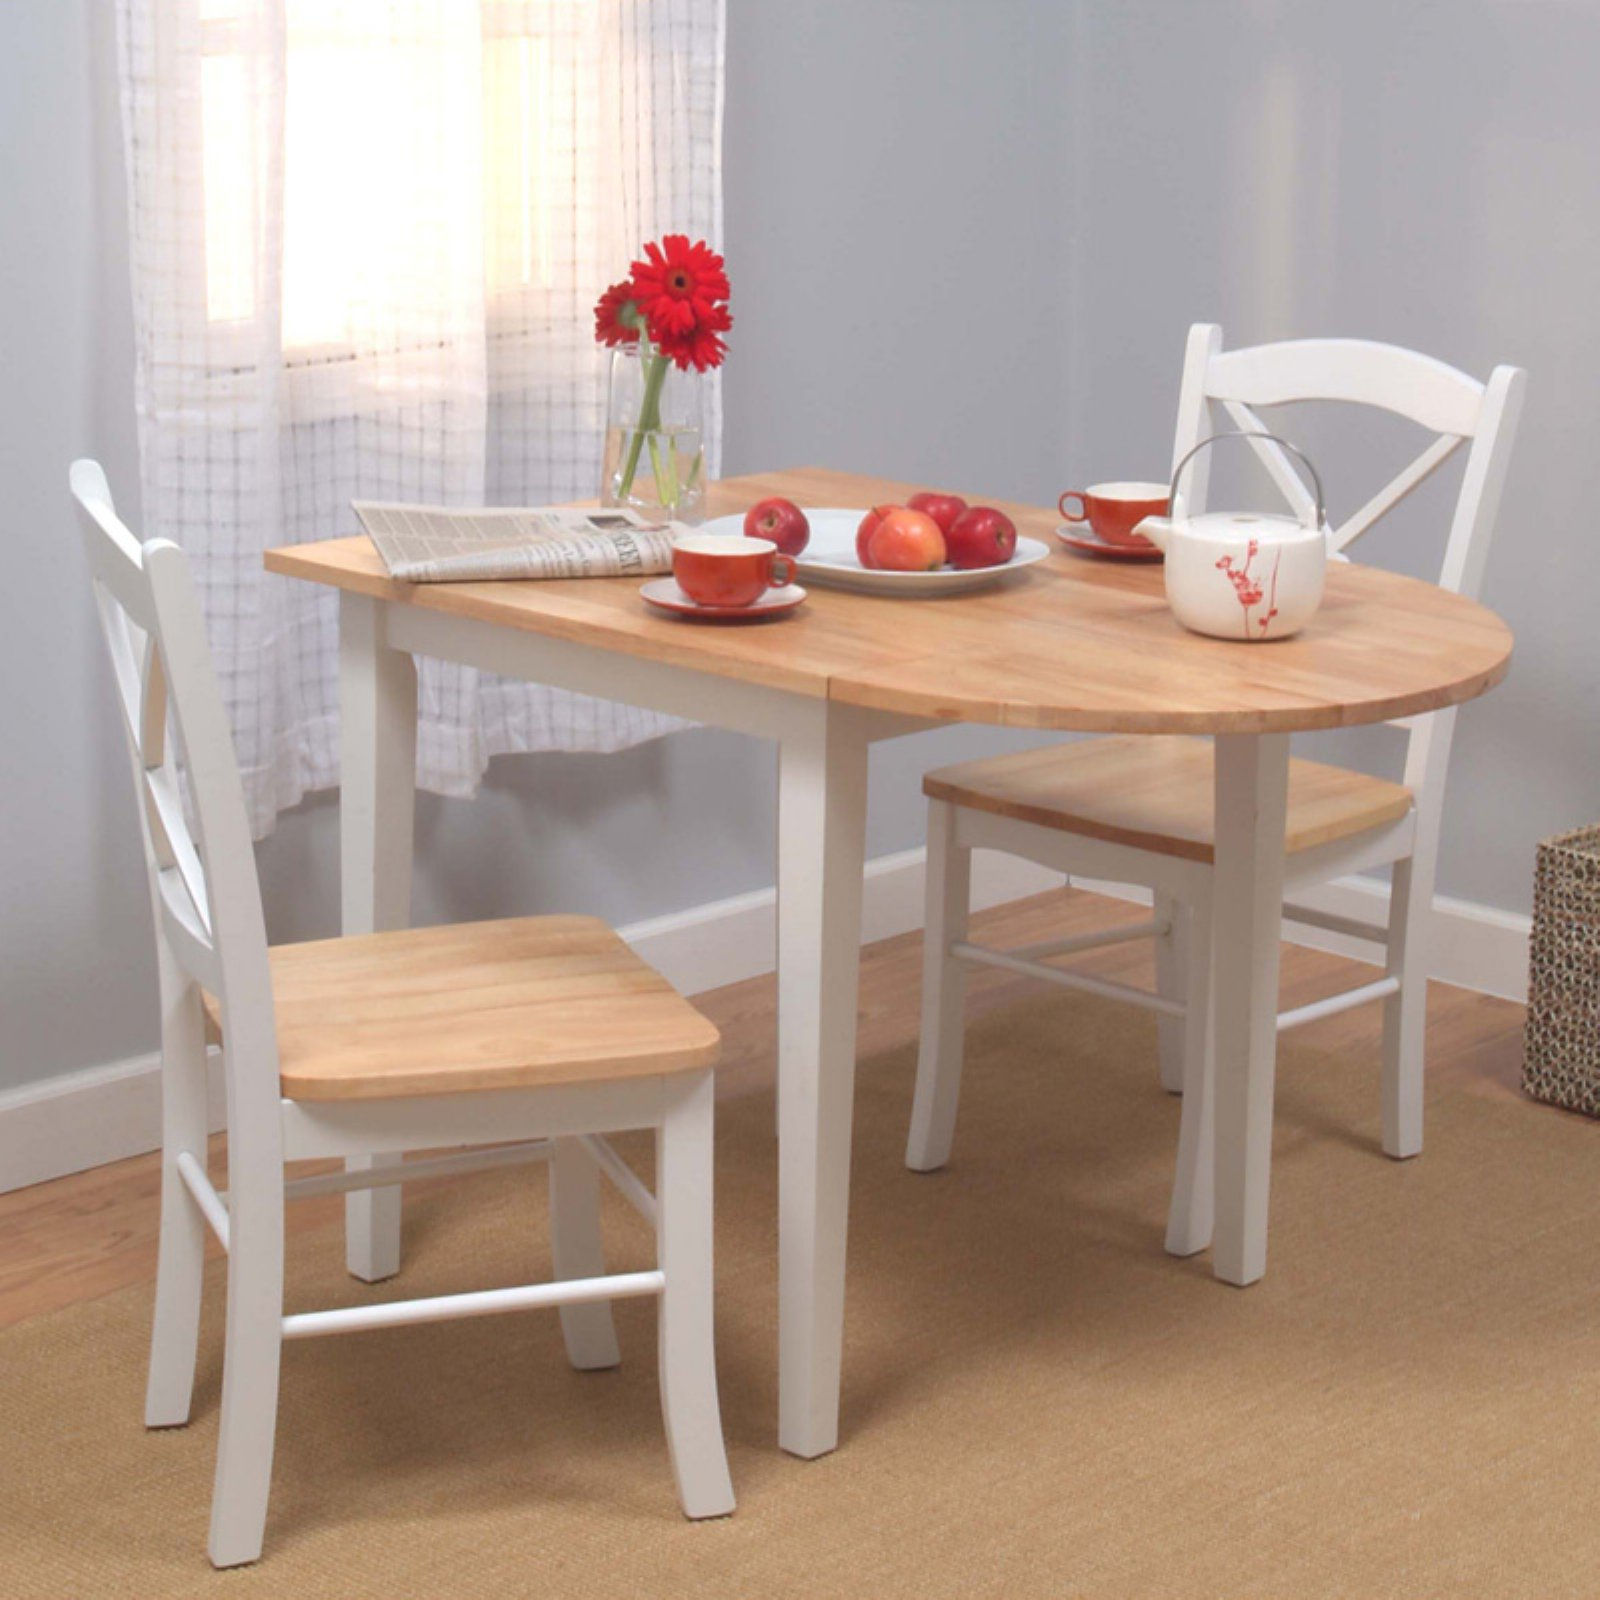 Target Marketing Systems Tiffany 3 Piece Dining Table Set